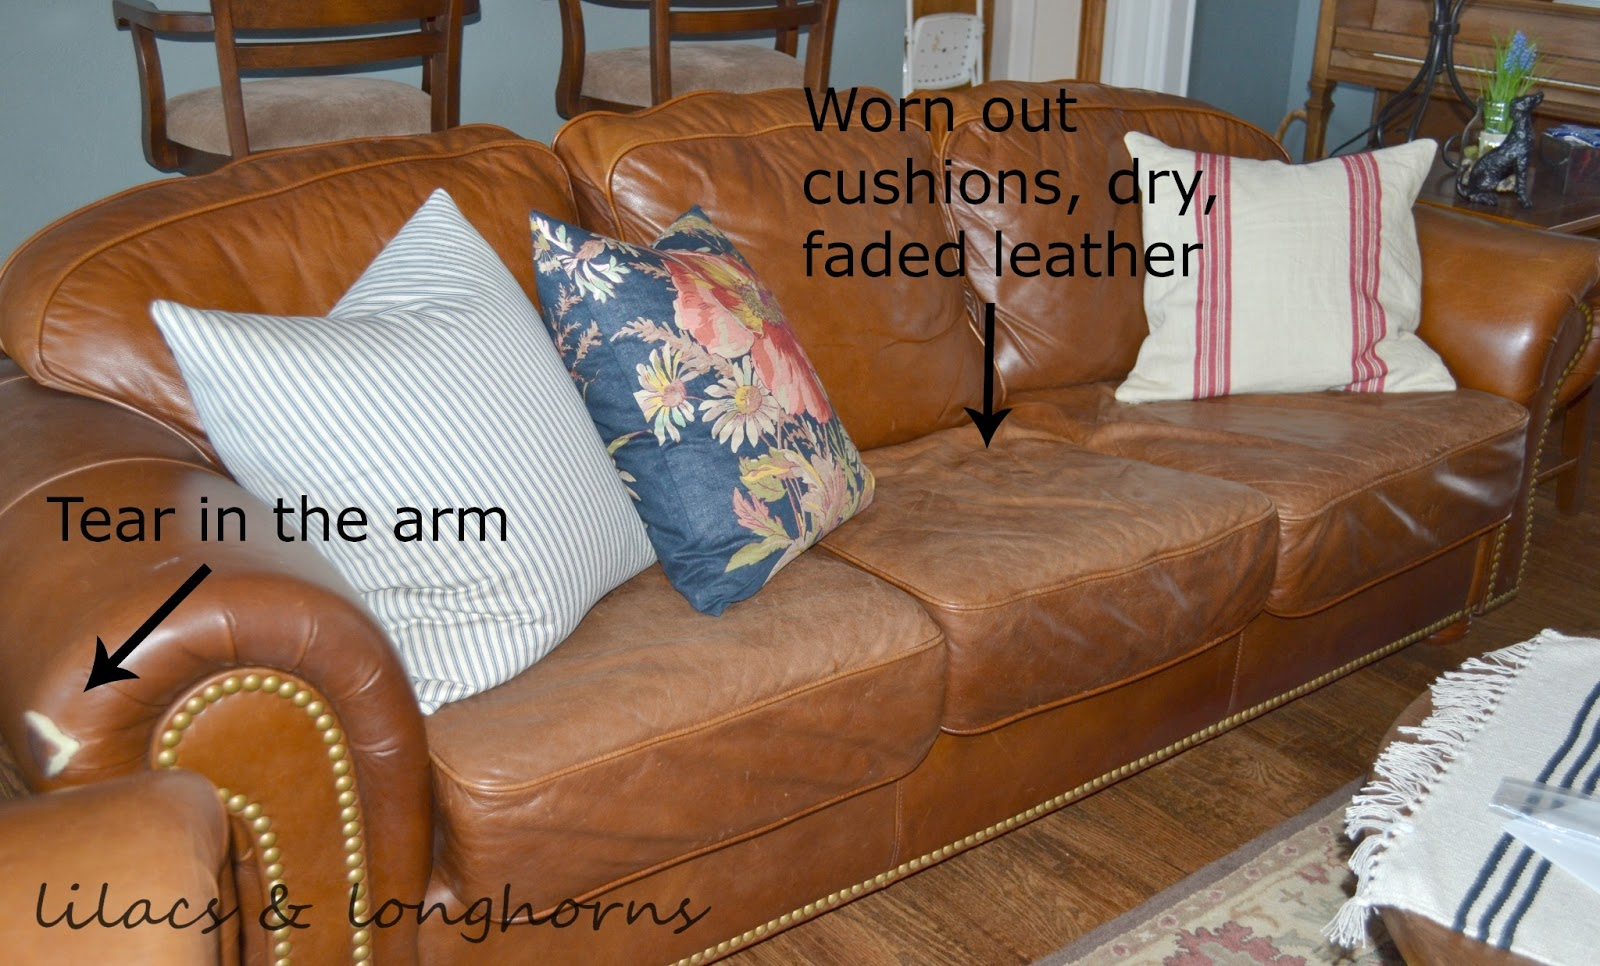 How To Repair A Large Tear In Leather Sofa Come Bed Bangalore Repairing And Refurbishing Furniture Lilacs